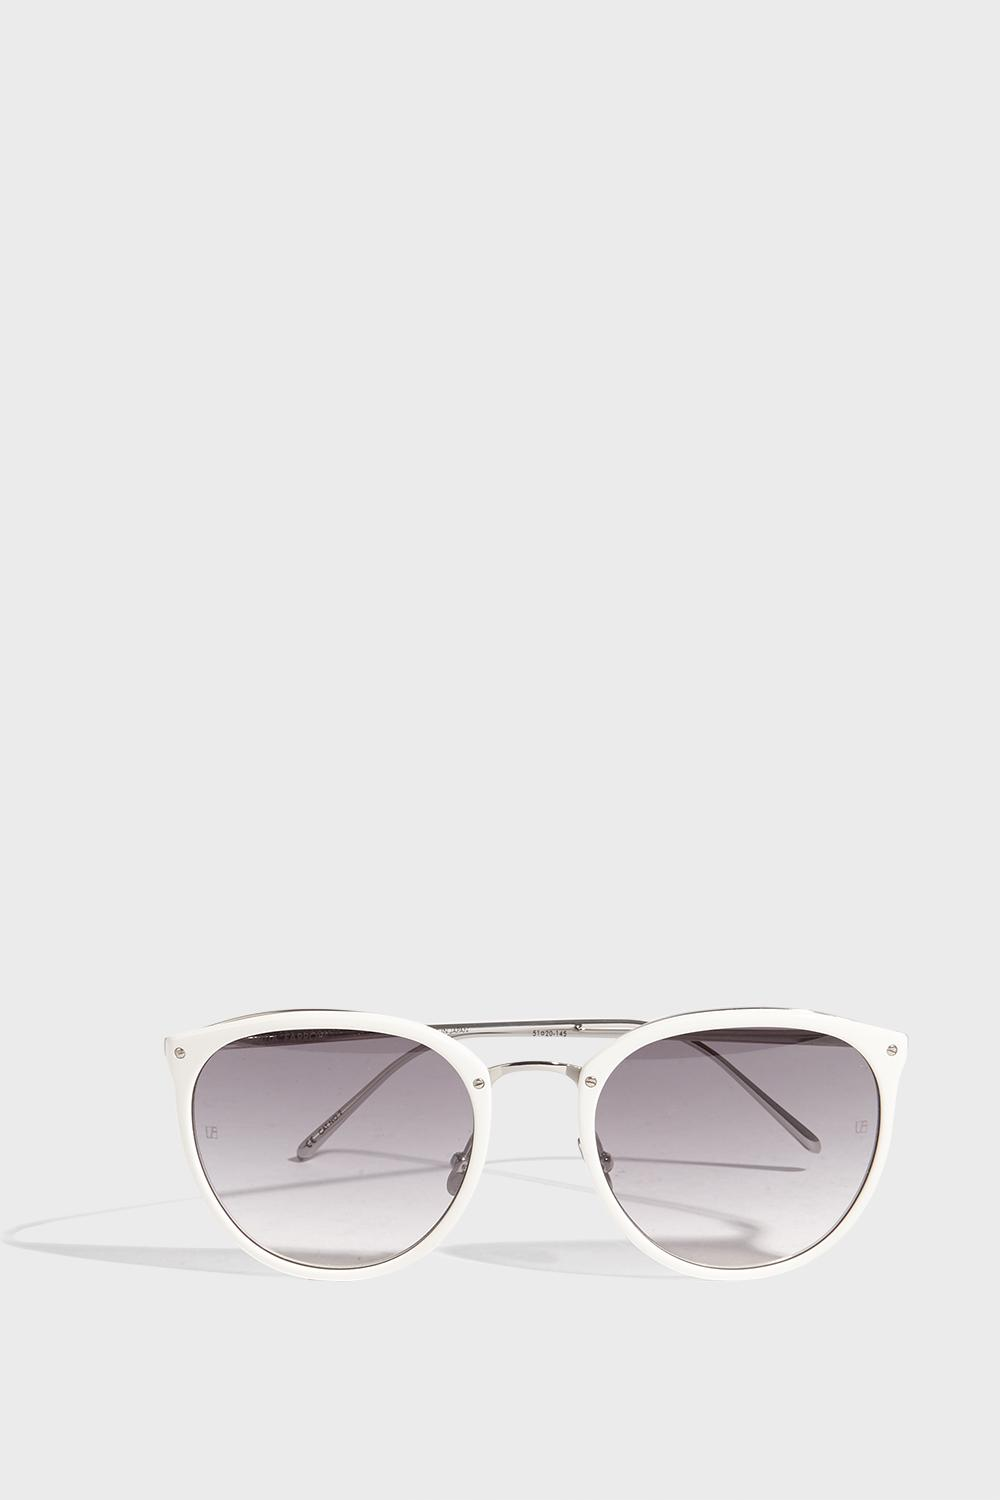 LINDA FARROW LUXE Round-Frame Acetate And Silver-Tone Sunglasses